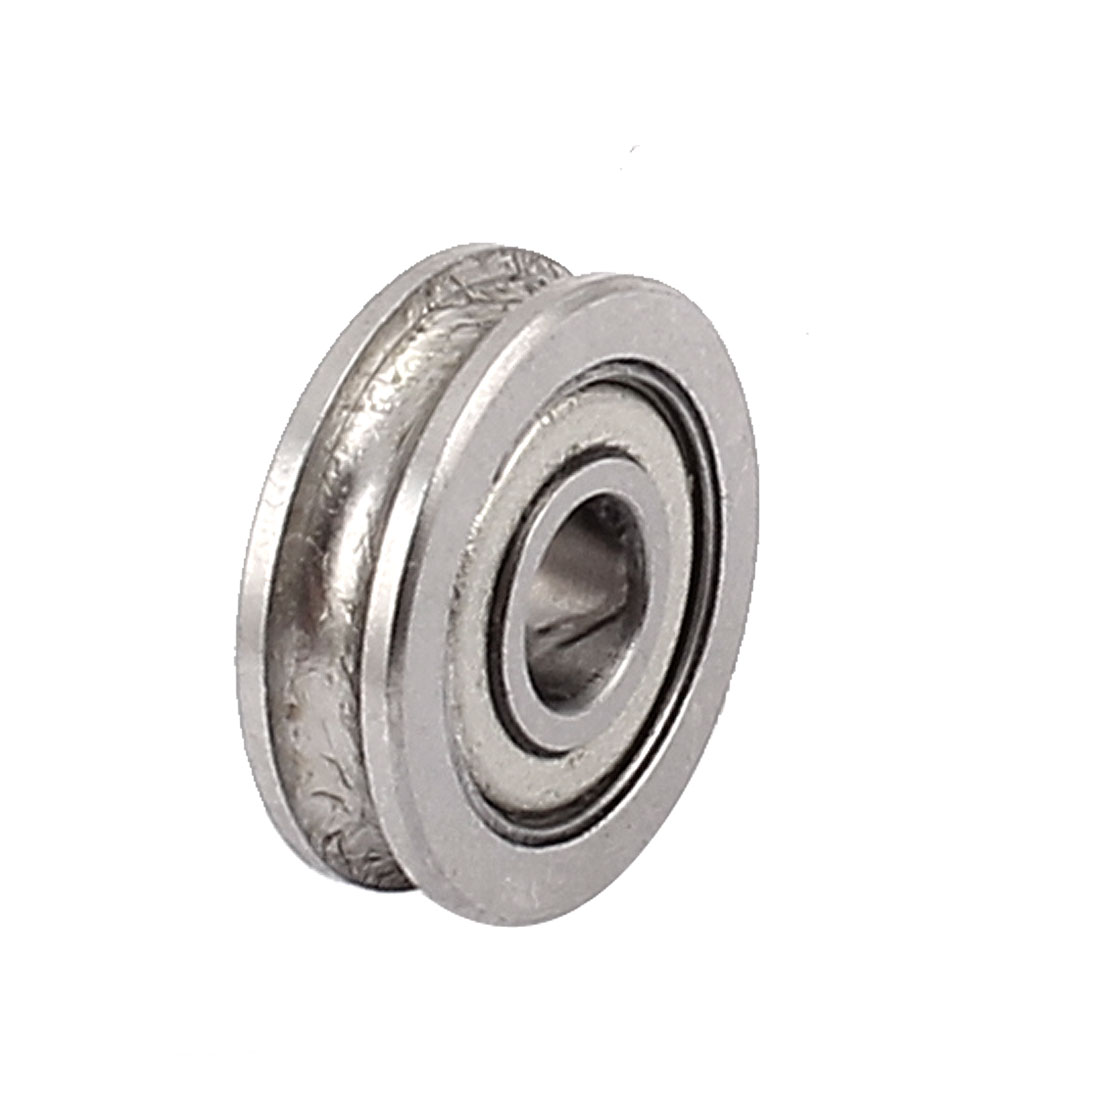 604U 13mmx4mmx4mm Stainless Steel Shields Deep Groove Flanged Ball Bearing